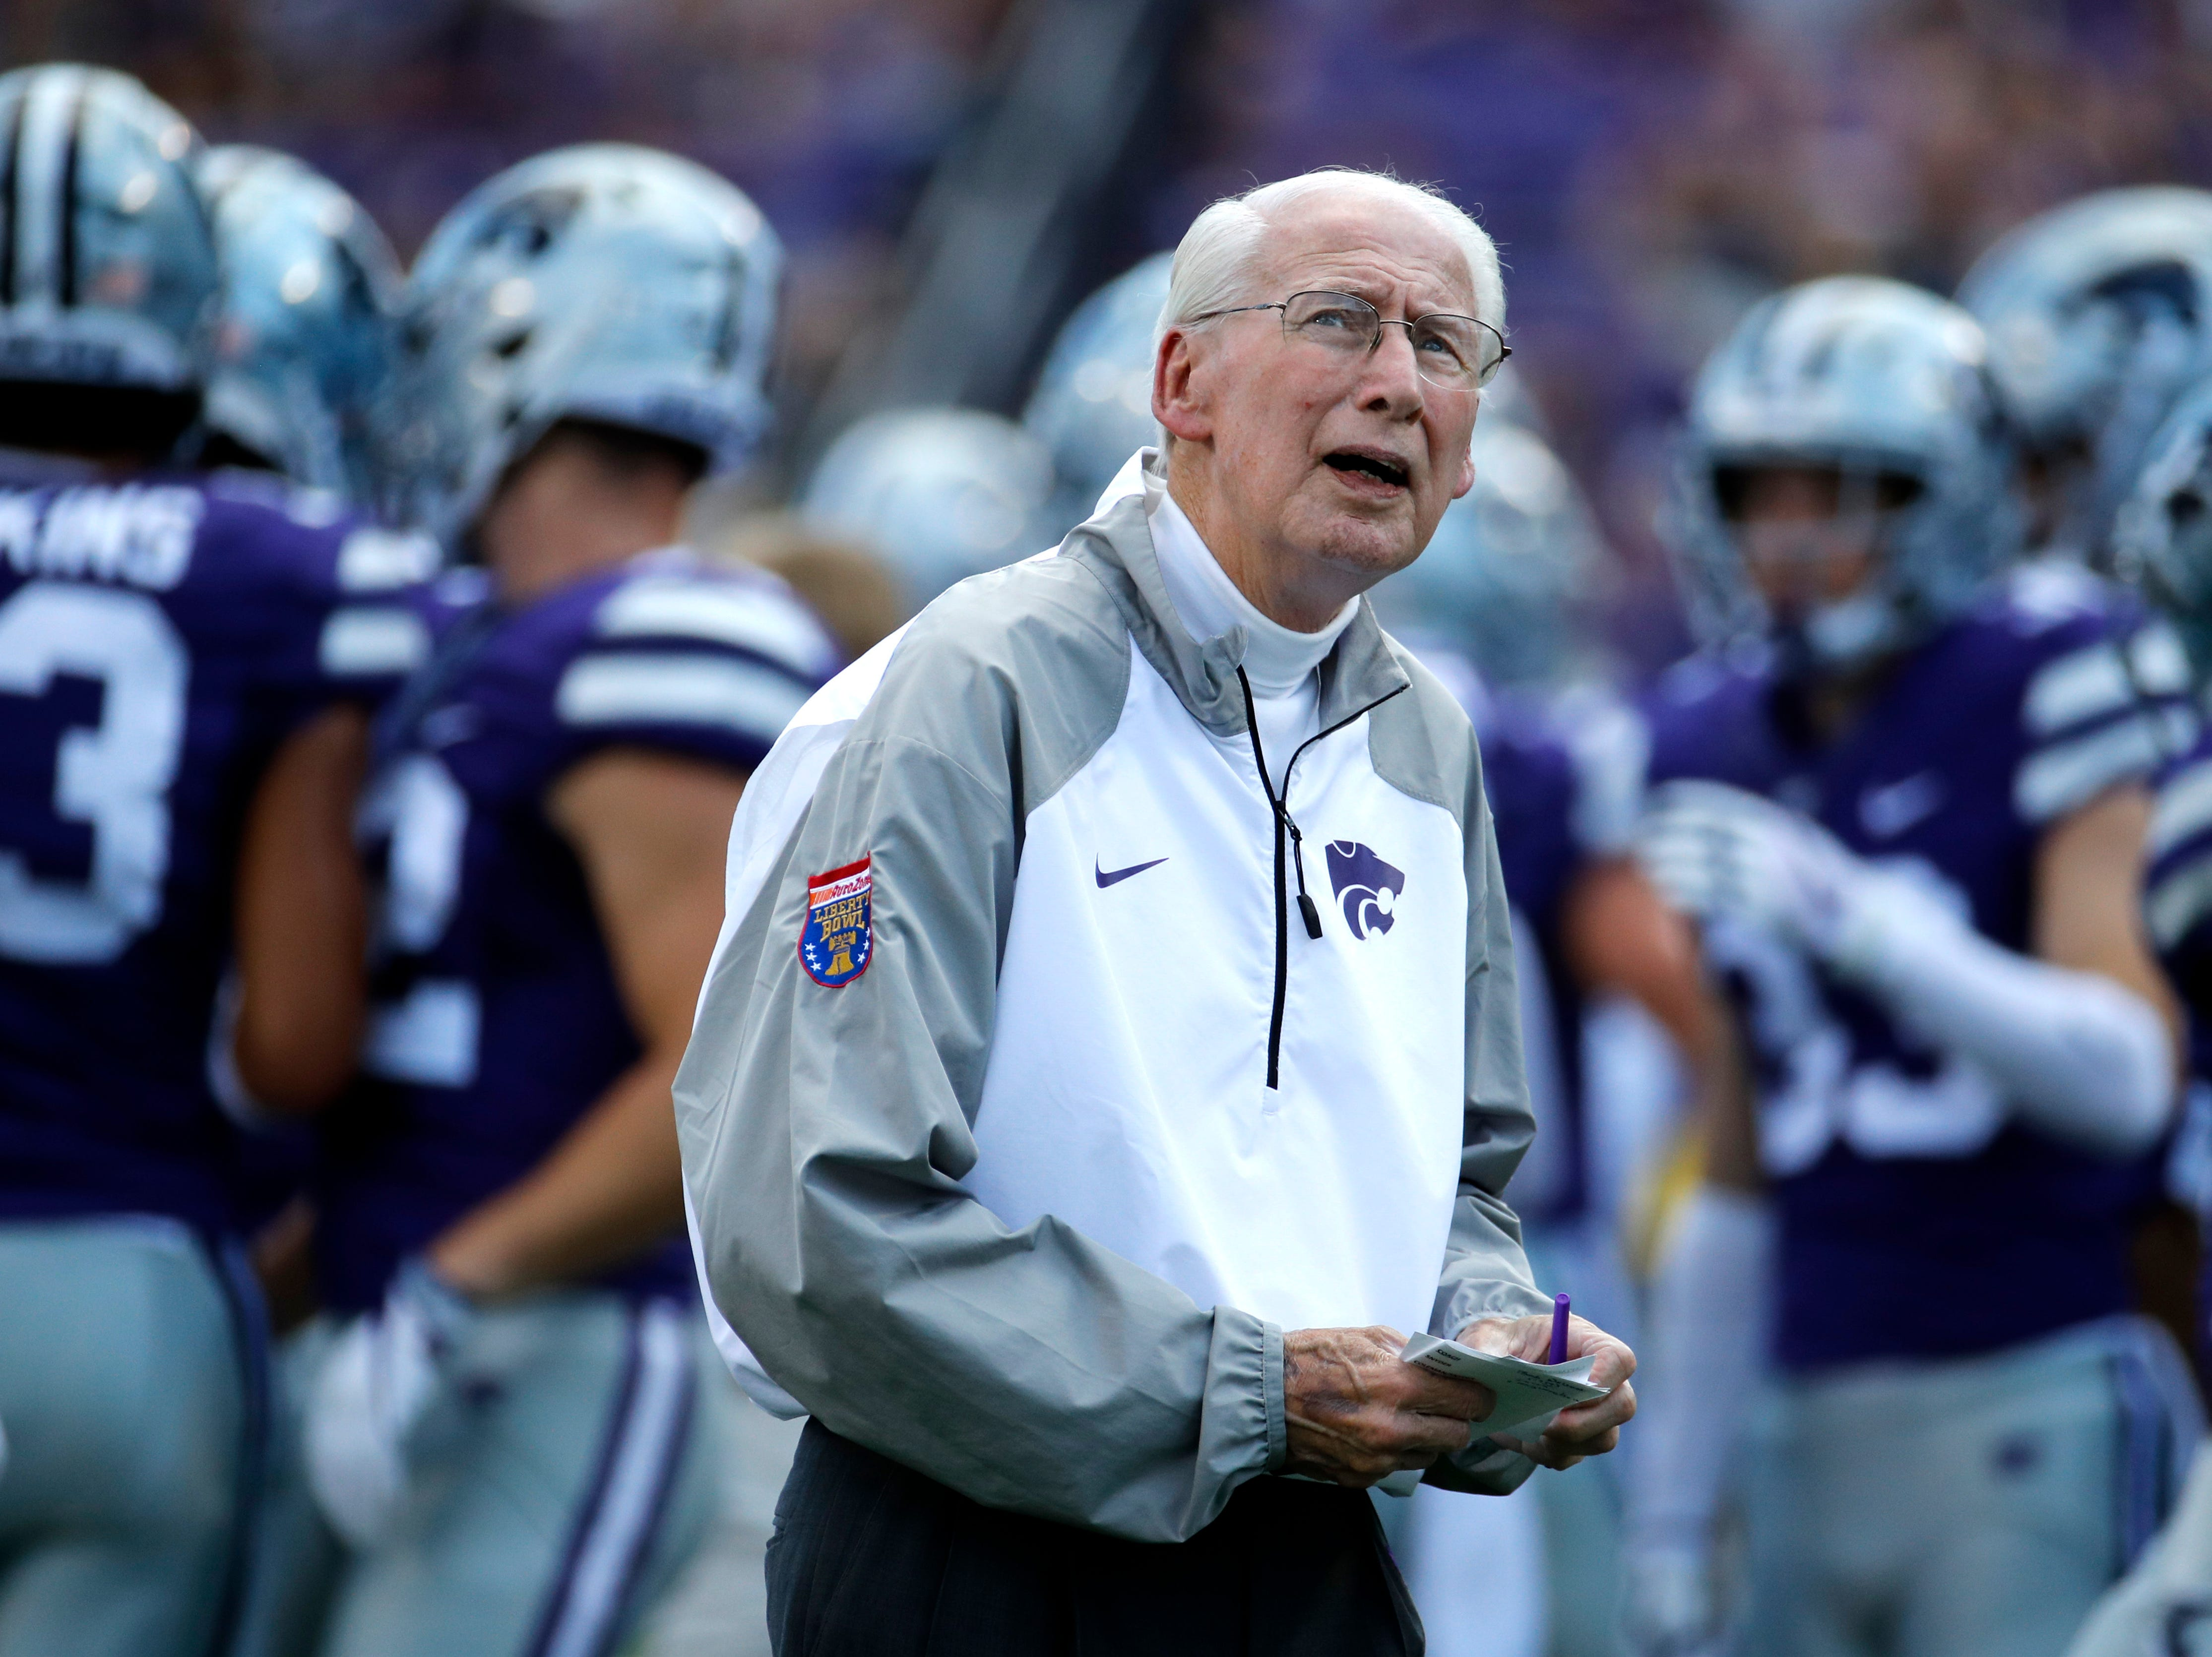 Kansas State head coach Bill Snyder watches his team warm up before an NCAA college football game against the South Dakota Saturday, Sept. 1, 2018, in Manhattan, Kan. (AP Photo/Charlie Riedel)